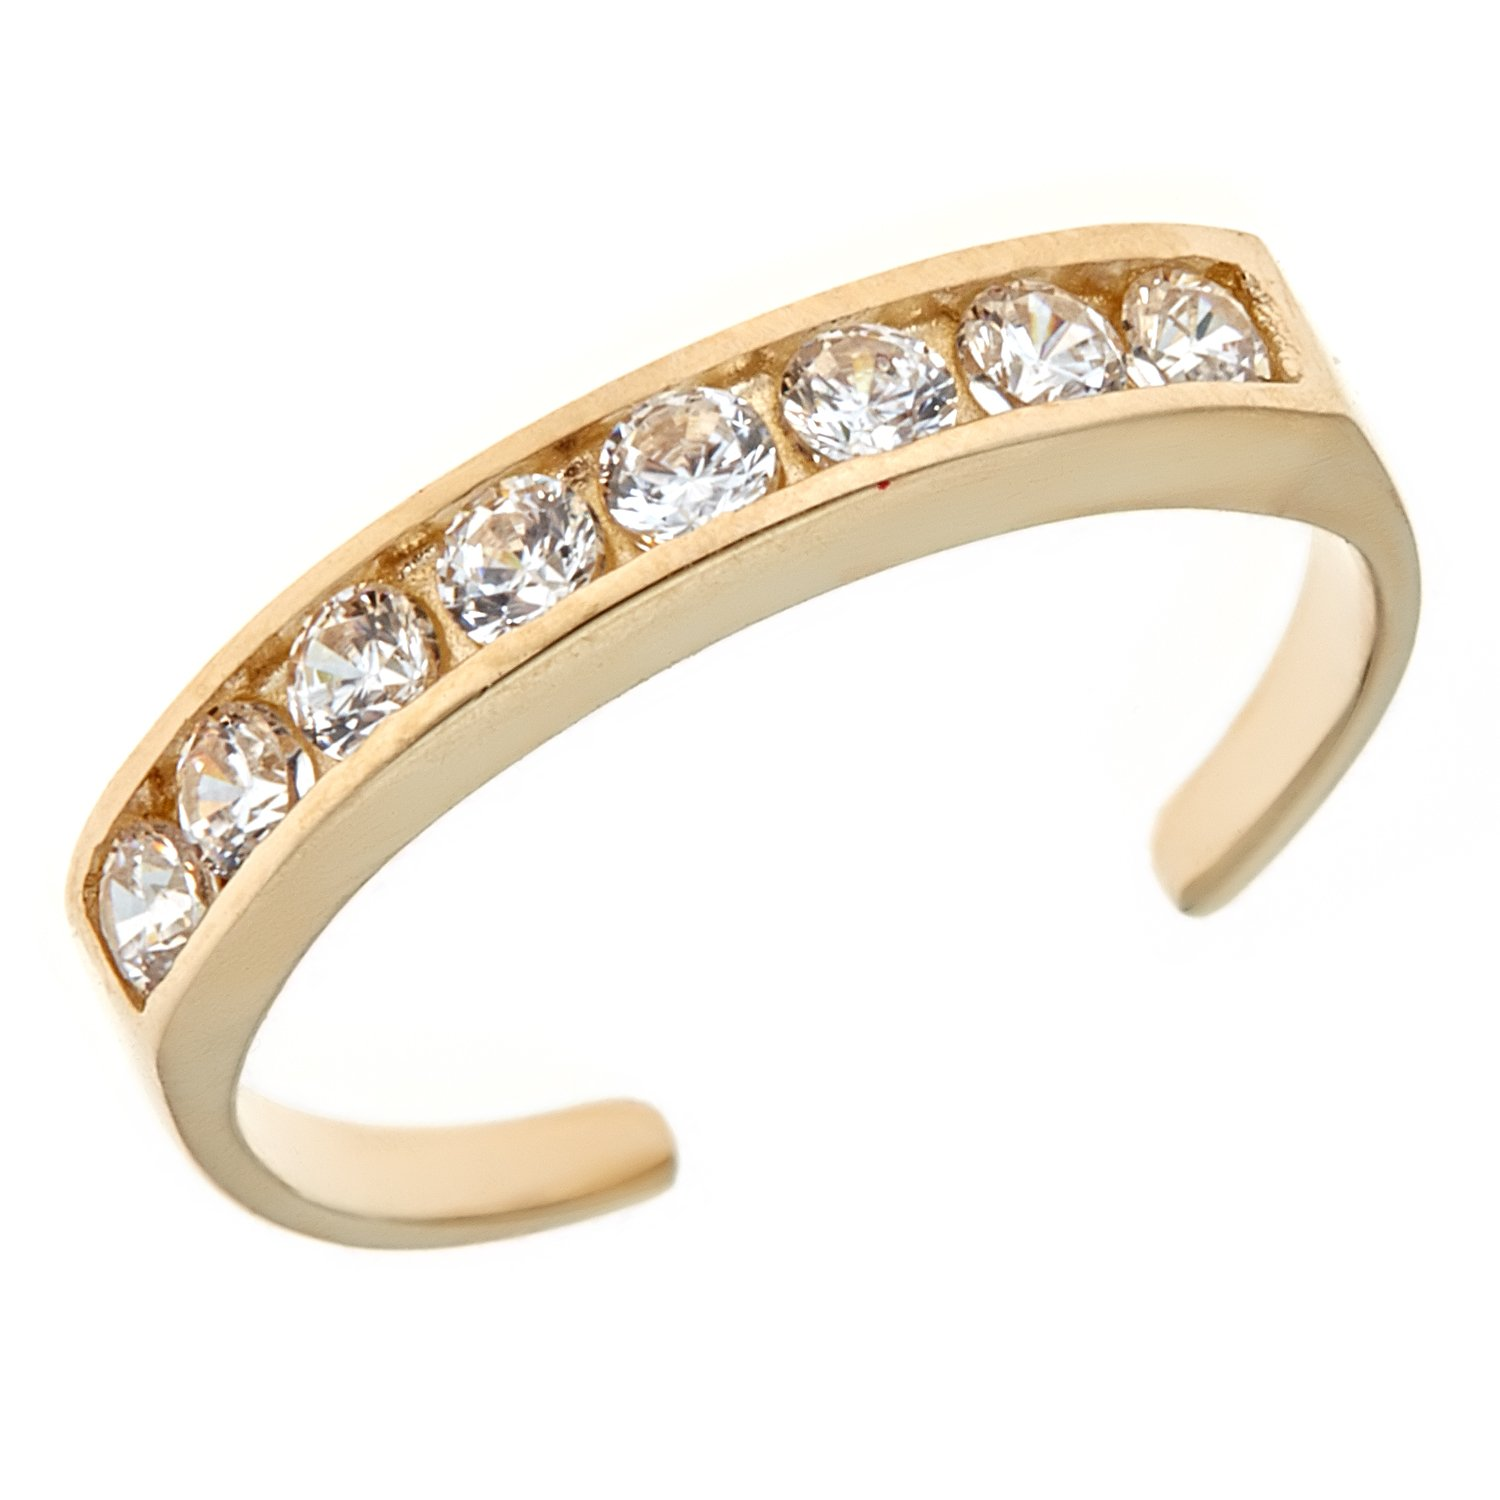 Ritastephens 10k Solid Gold Eternity Band Cubic Zirconia Toe Ring Channel Set Adjustable Body Jewelry by Ritastephens